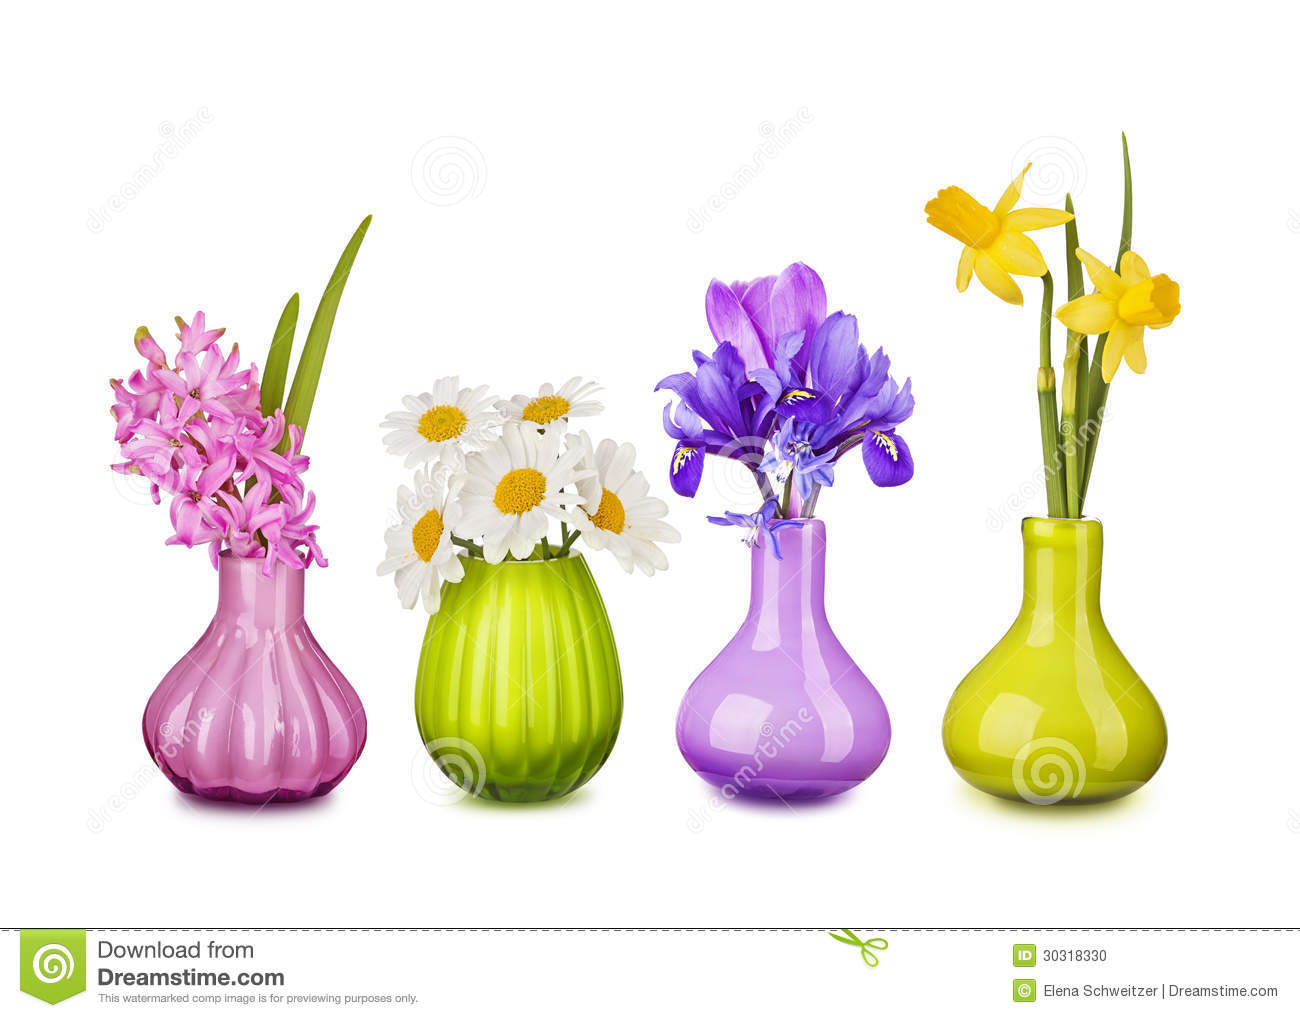 Flower Vase Clipart: Spring Flowers In Vases Stock Photo